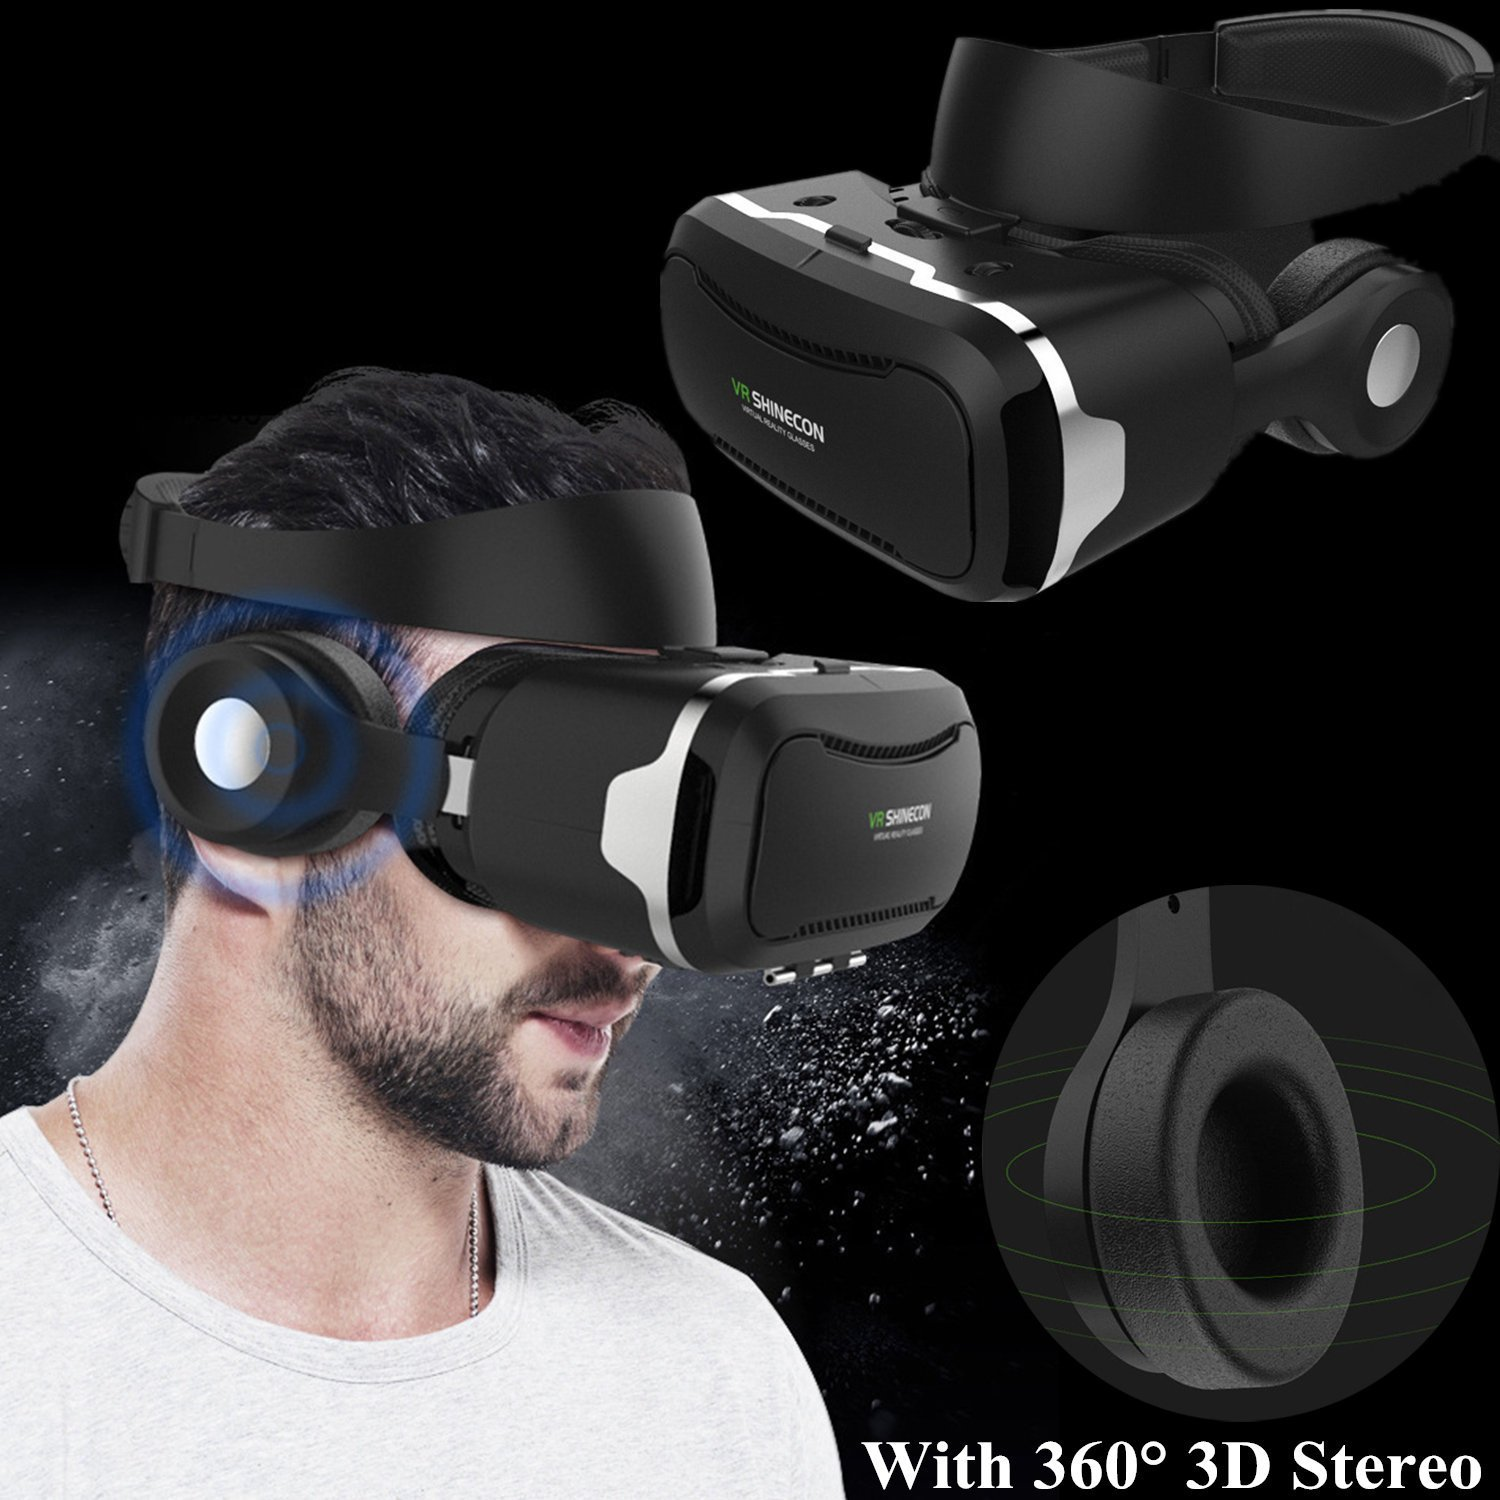 "3d Realidad Virtual móvil, bevifi VR móvil/gafas con batería y mando a distancia integrado Bluetooth 3d Auriculares para 4.5 – 6.0 ""Android/iOS para Samsung Galaxy S7 Edge S6, iPhone 7 6 6S Plus etc."